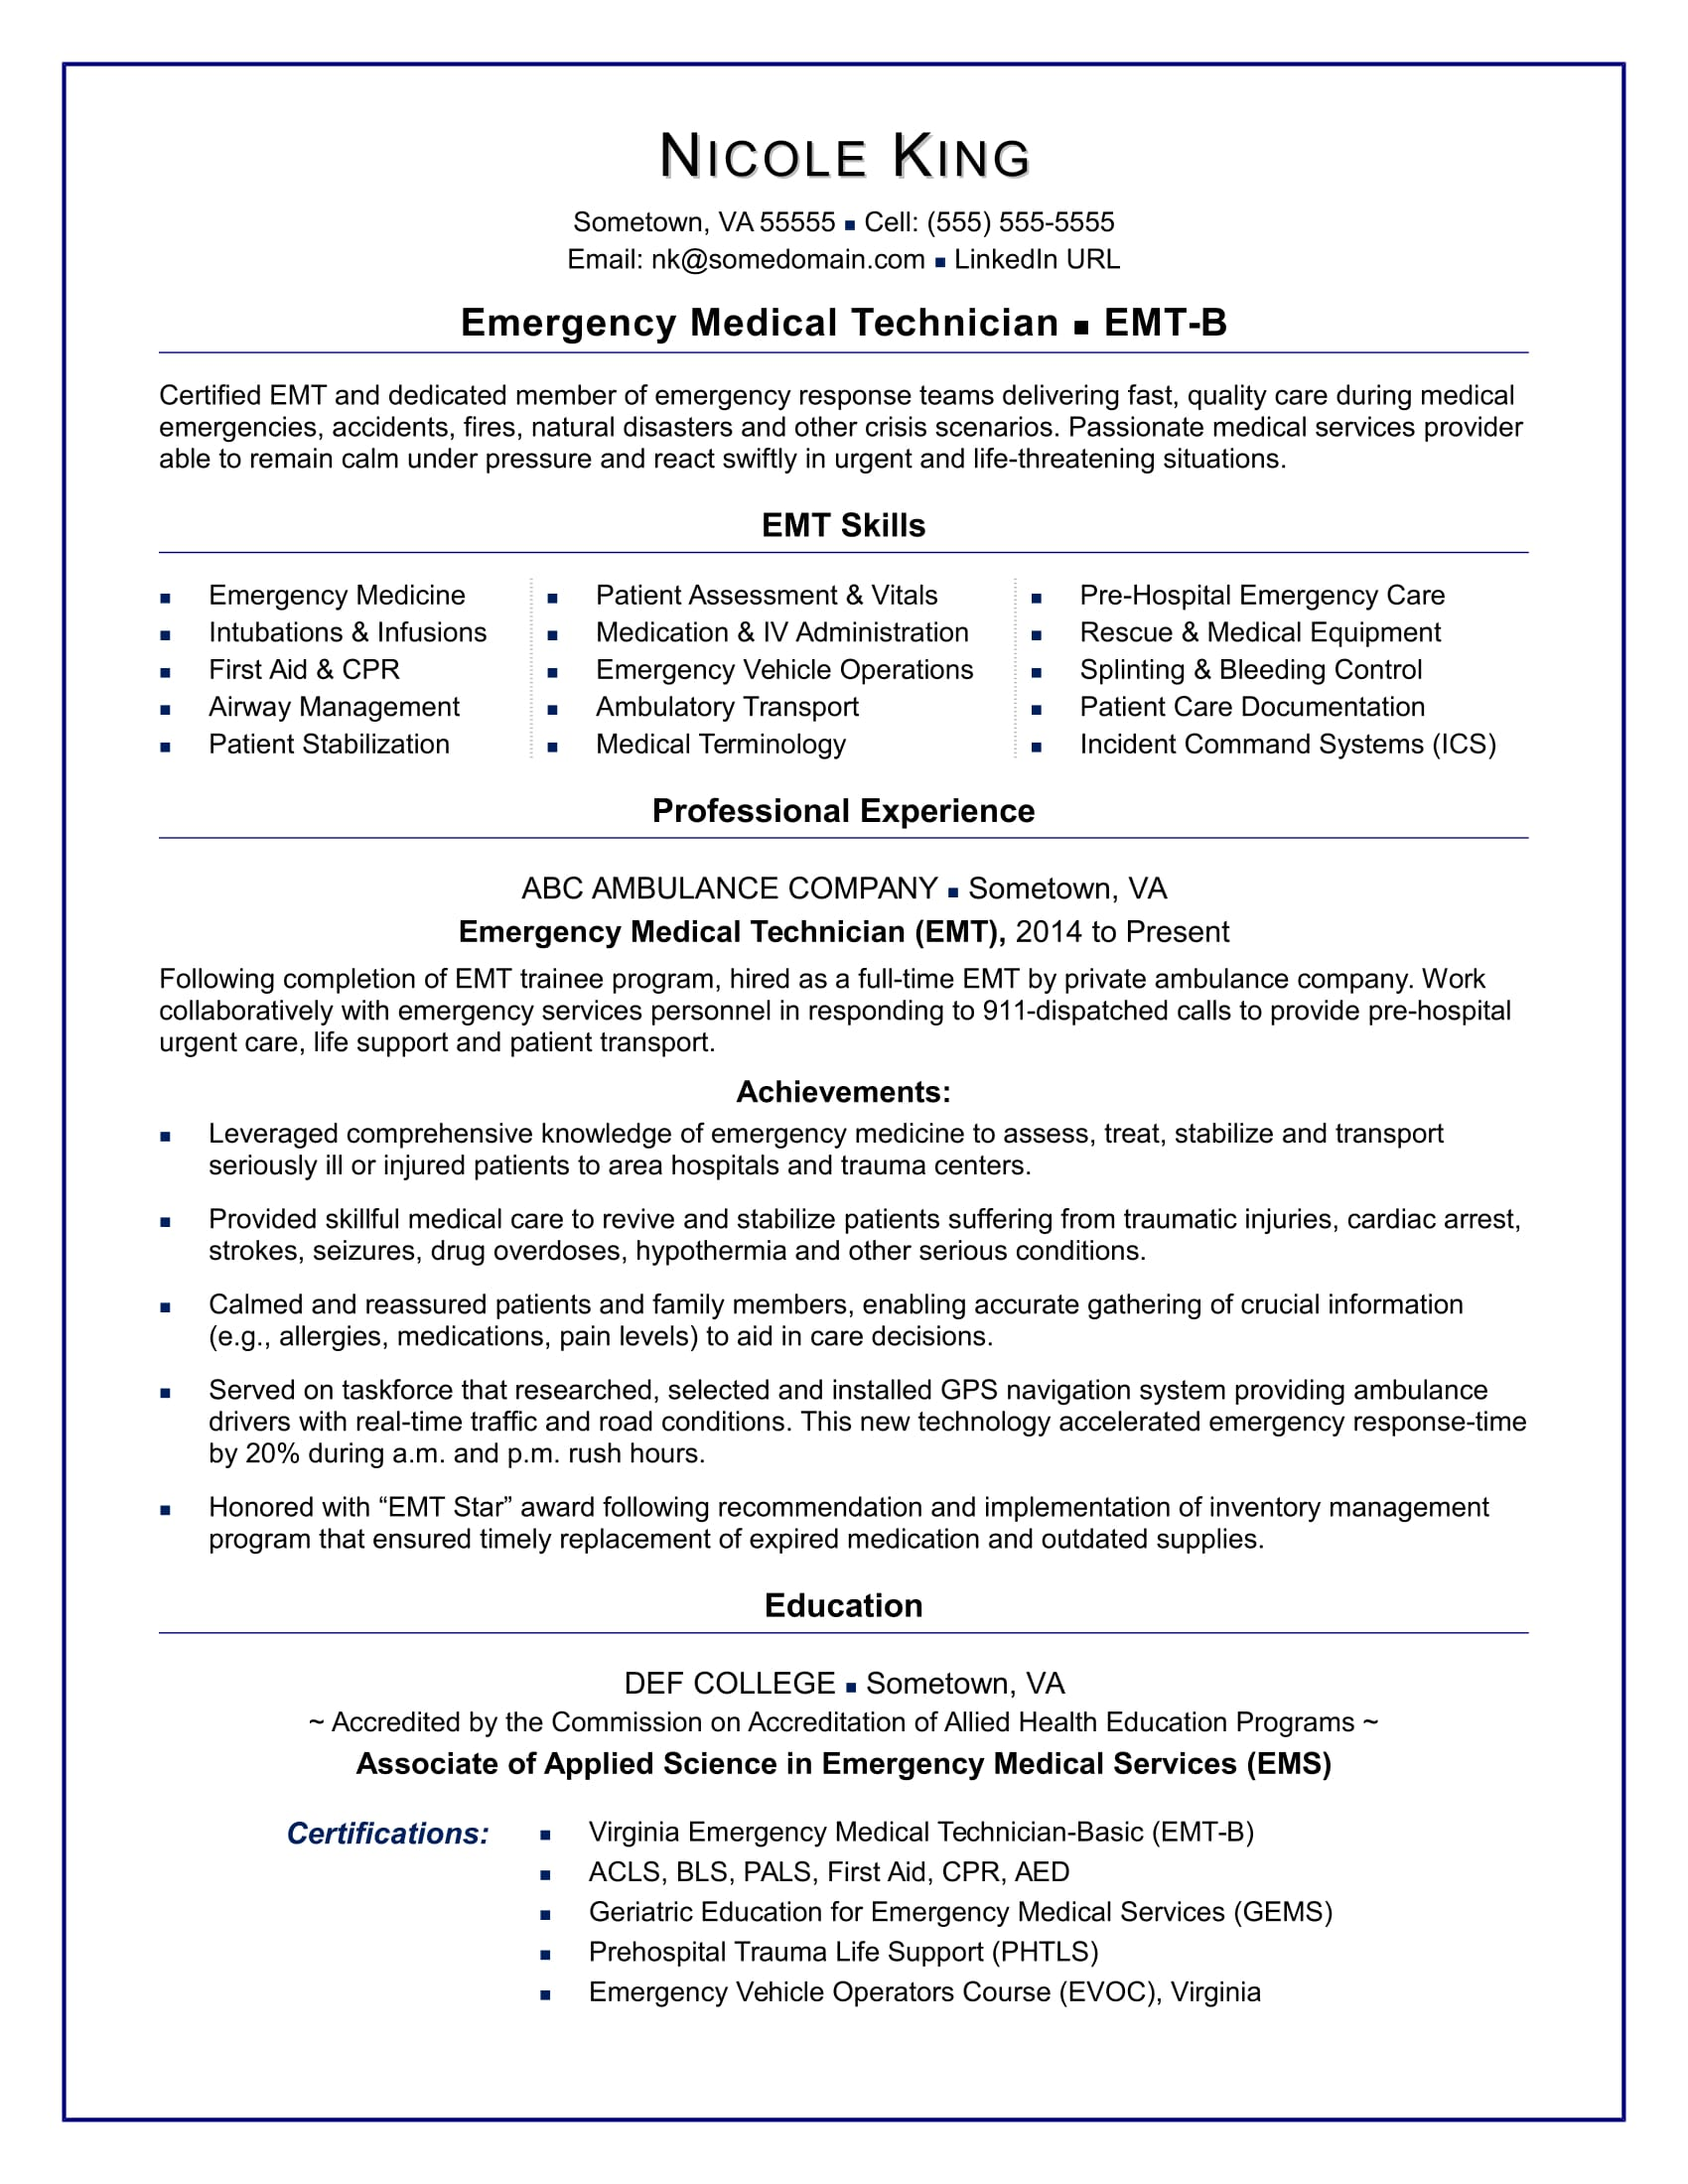 emt resume sample - Emt Resume Sample